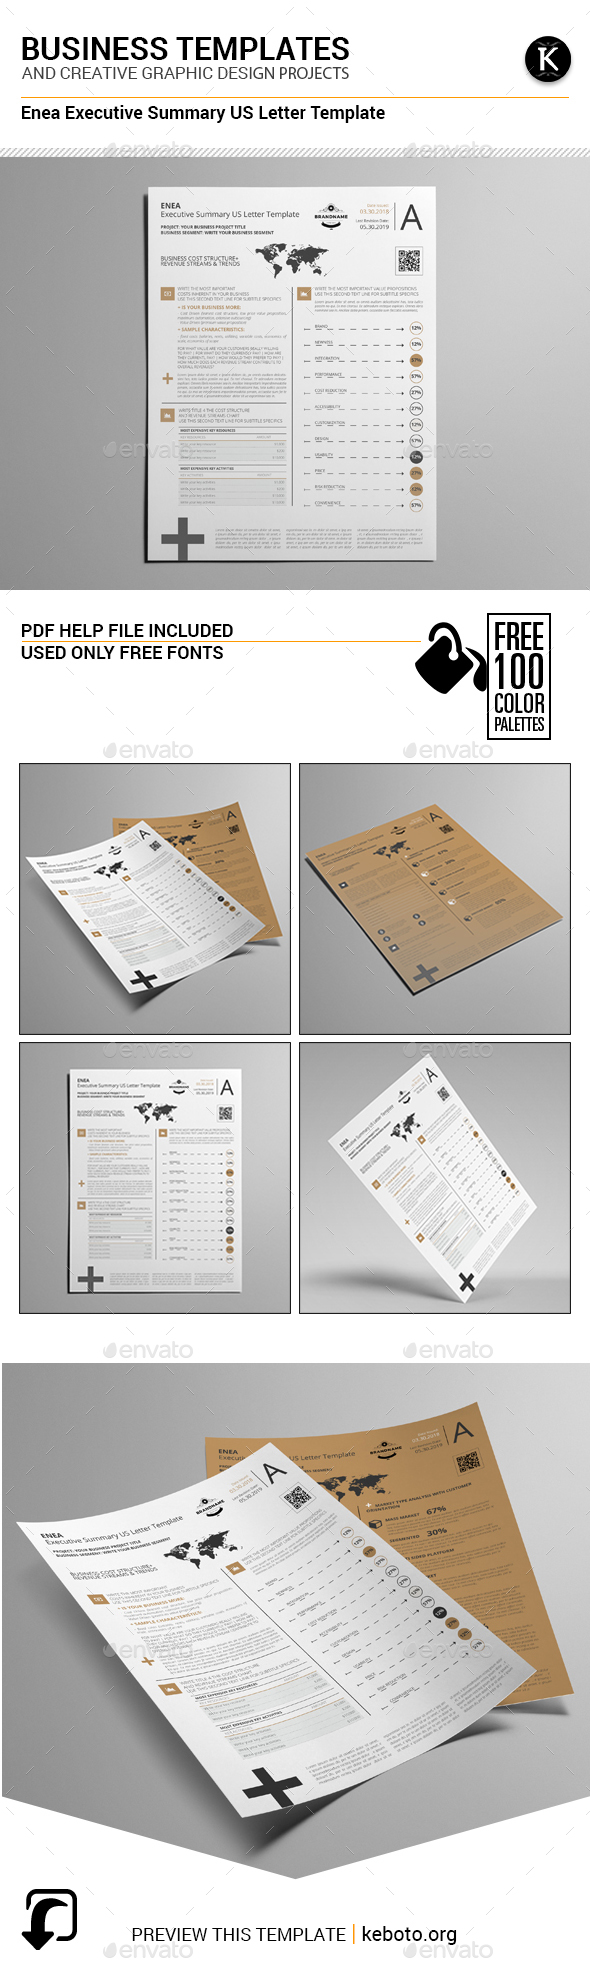 Enea Executive Summary US Letter Template - Miscellaneous Print Templates